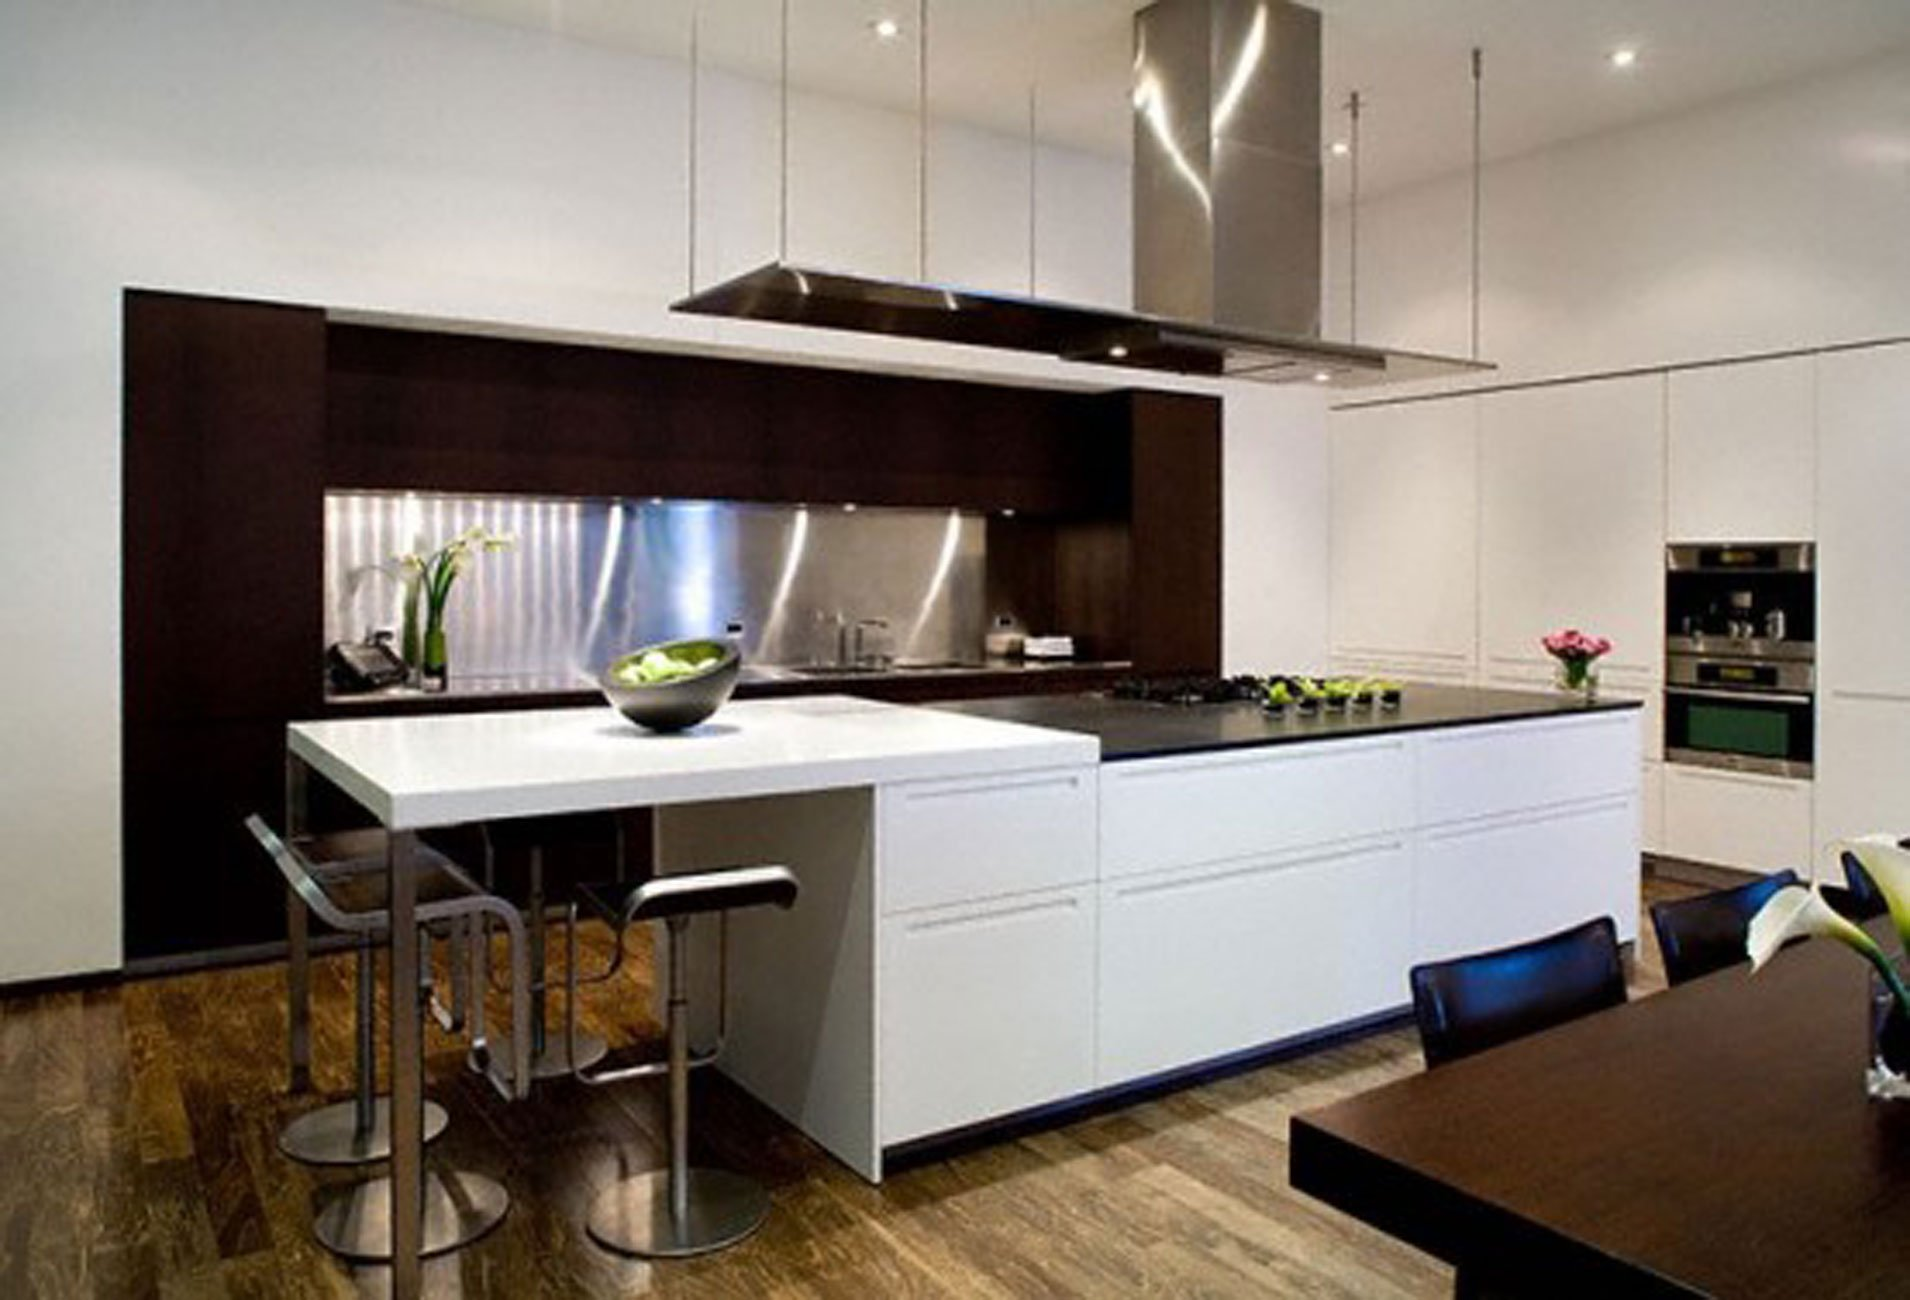 modern kitchen interior designs homesfeed. Black Bedroom Furniture Sets. Home Design Ideas